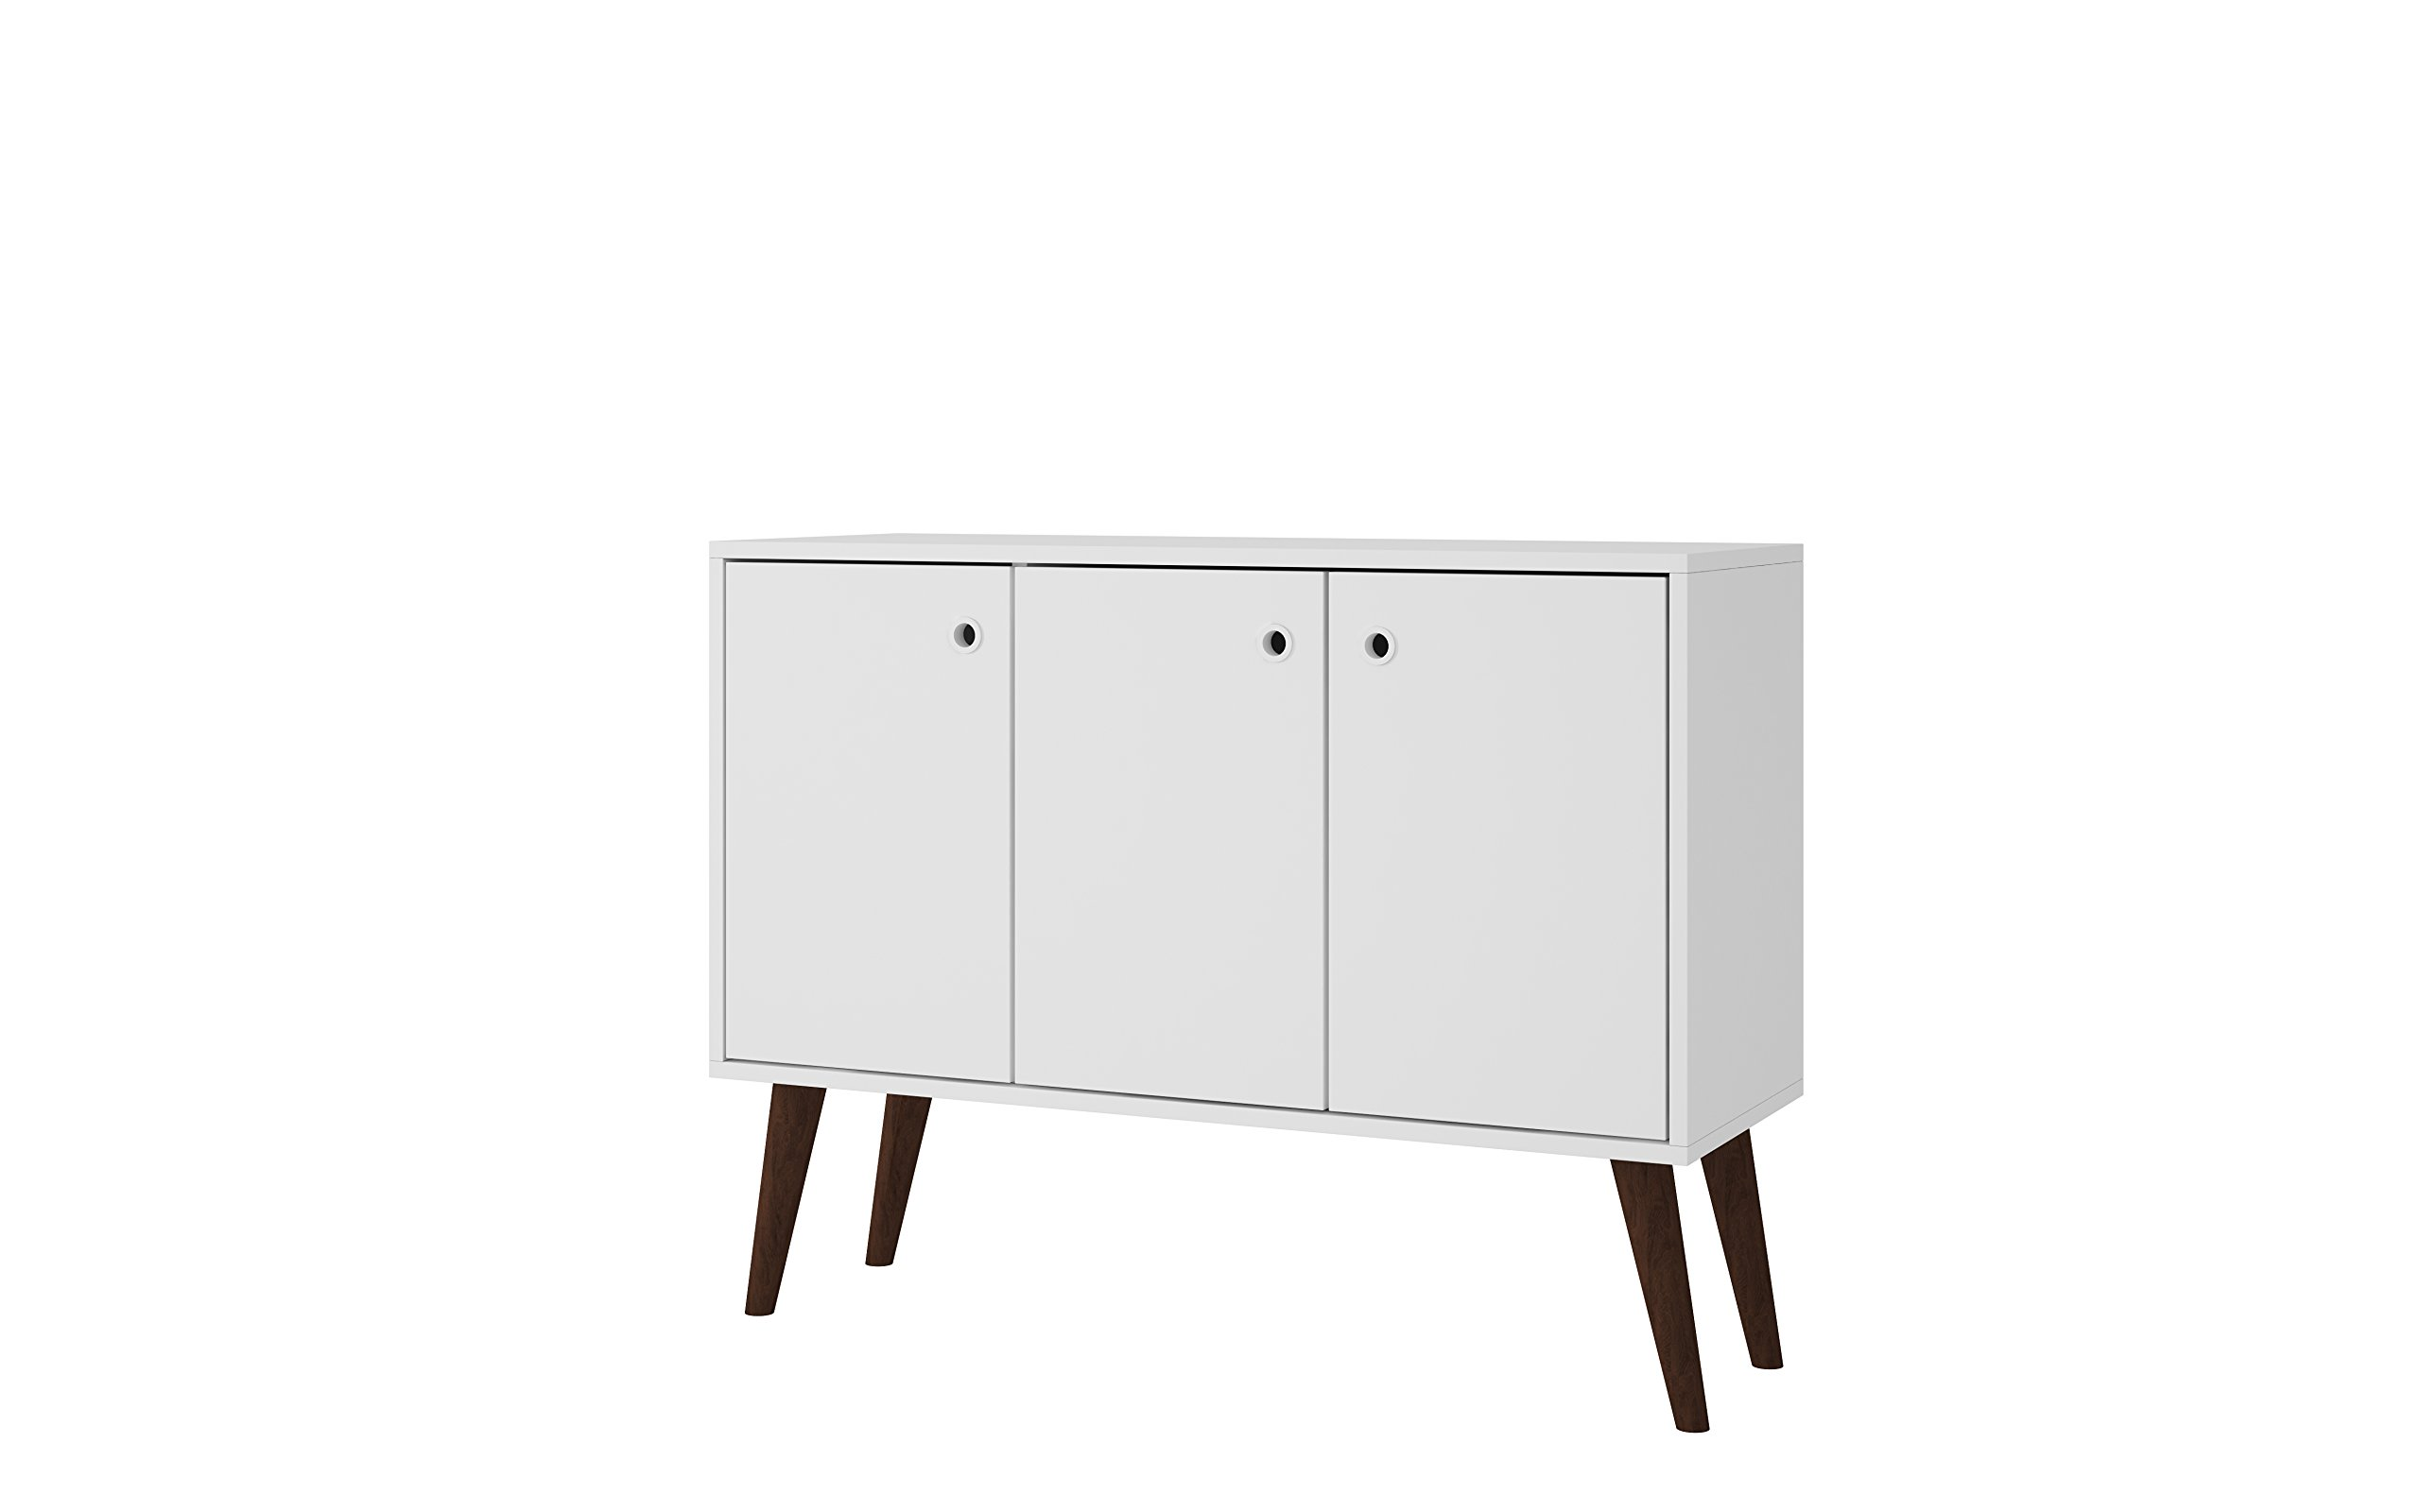 Manhattan Comfort 94AMC129 Bromma Stand Buffet Table, White by Manhattan Comfort